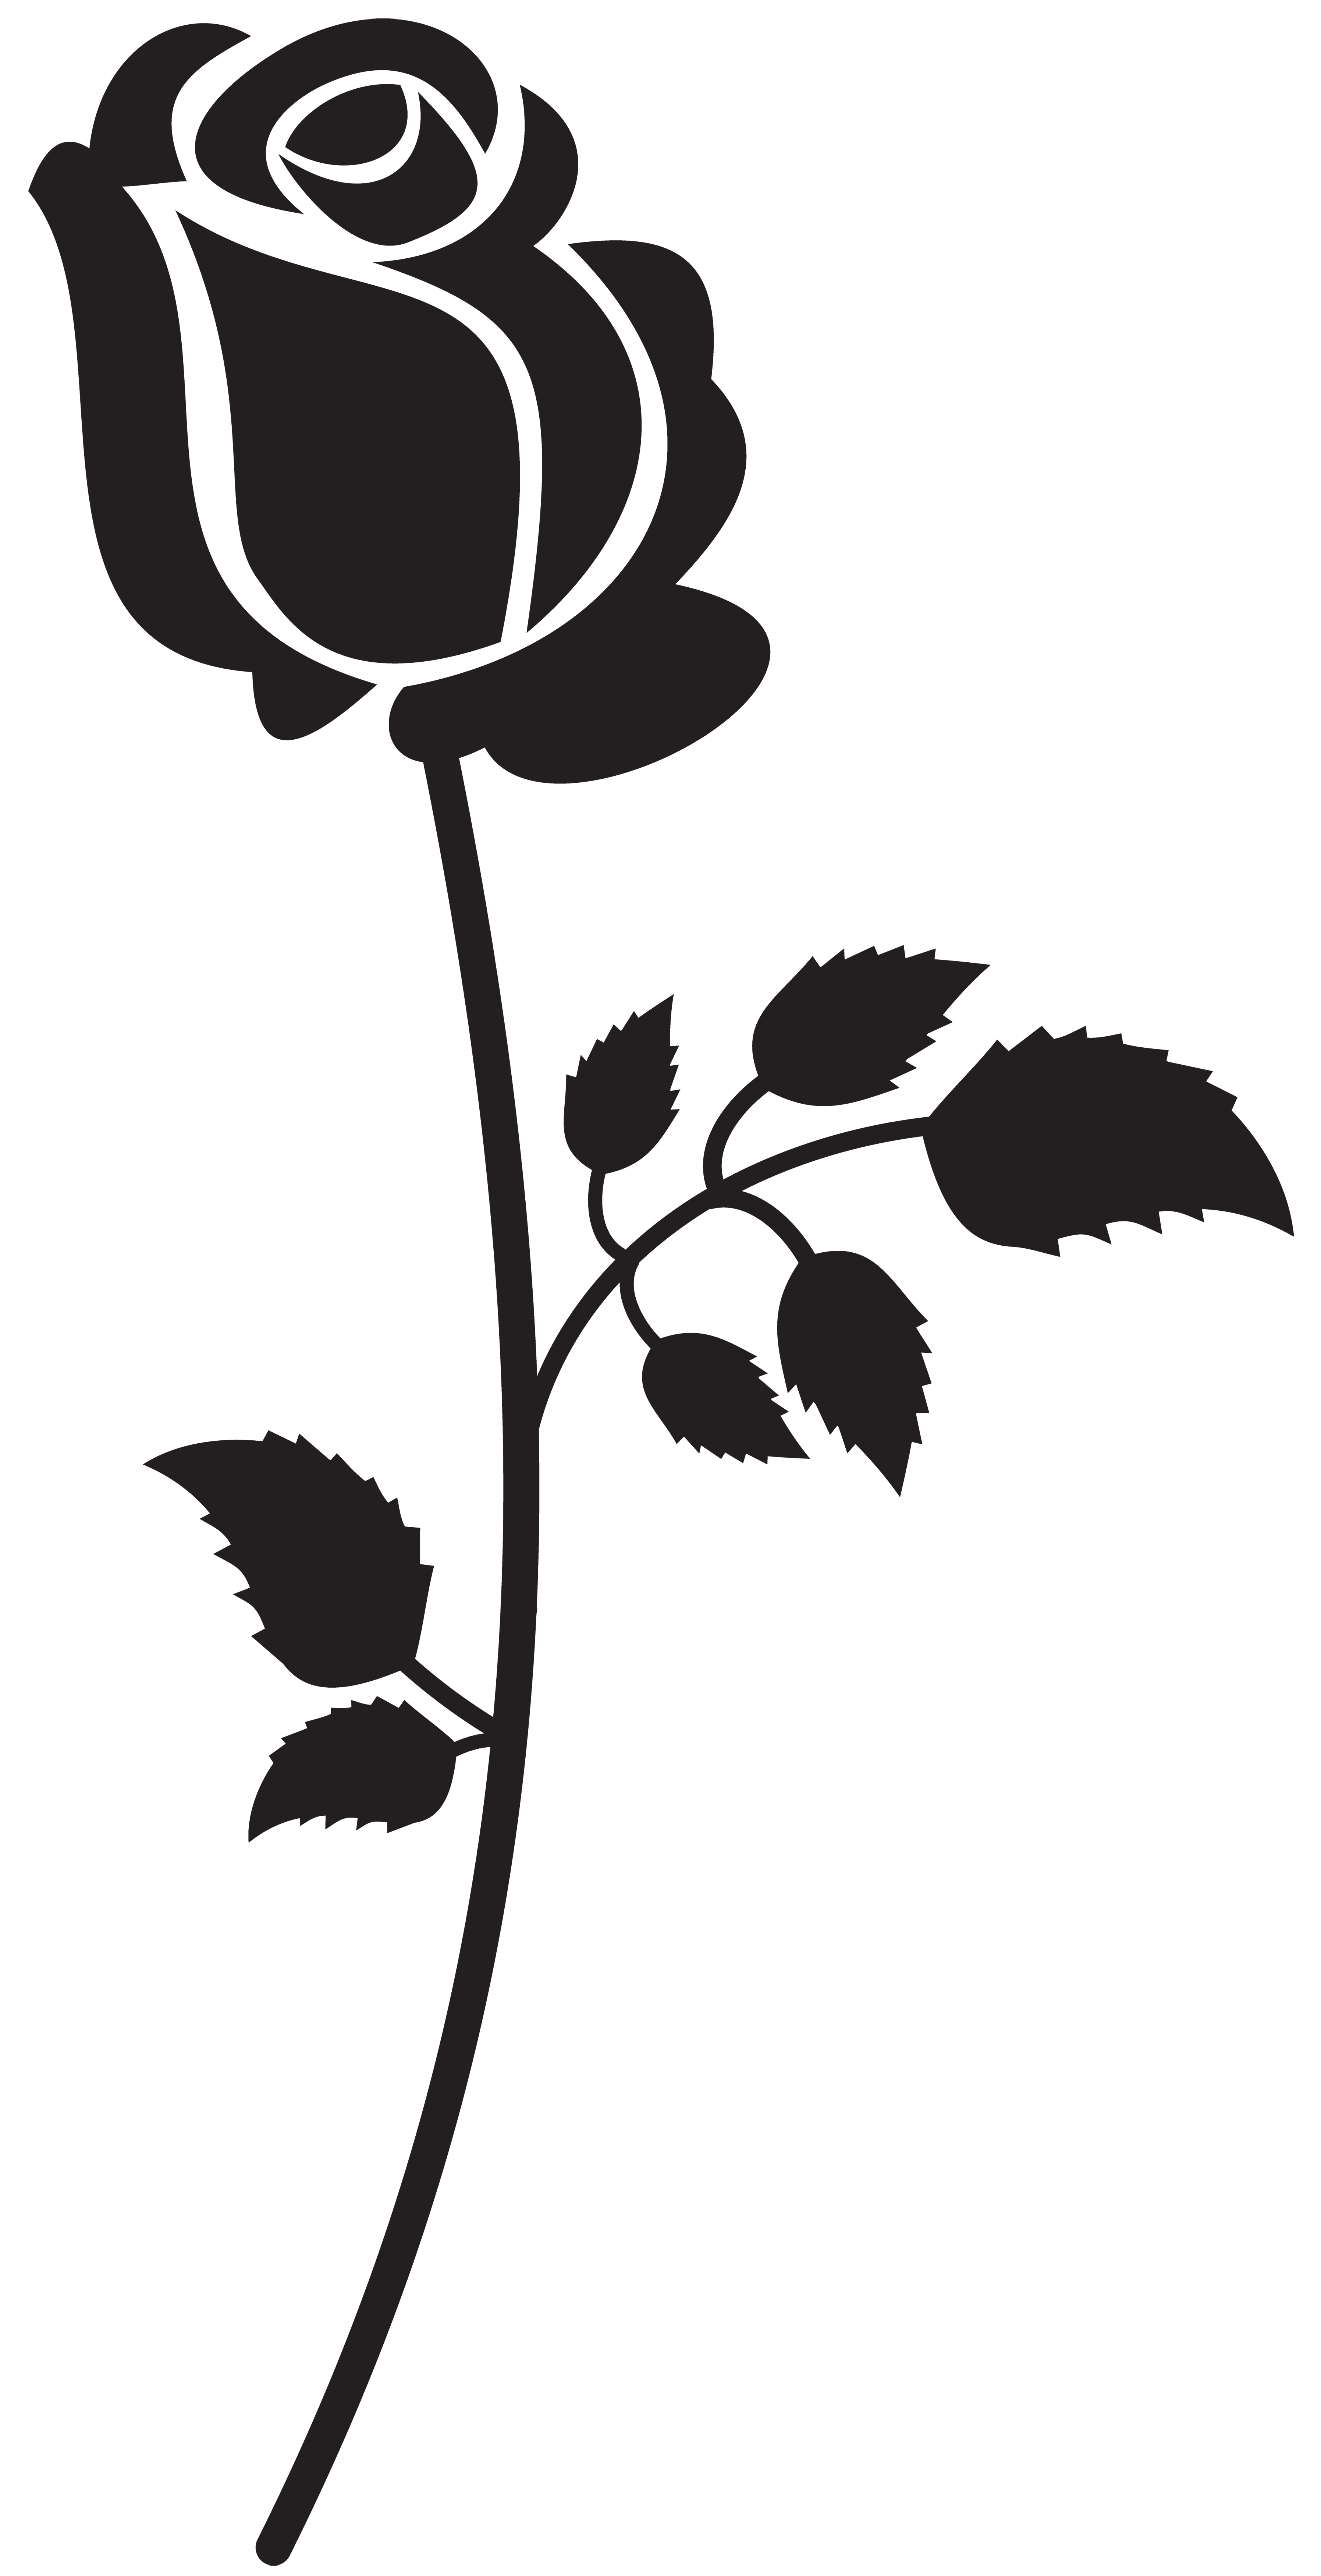 Rose Black And White Clipart | Free download on ClipArtMag